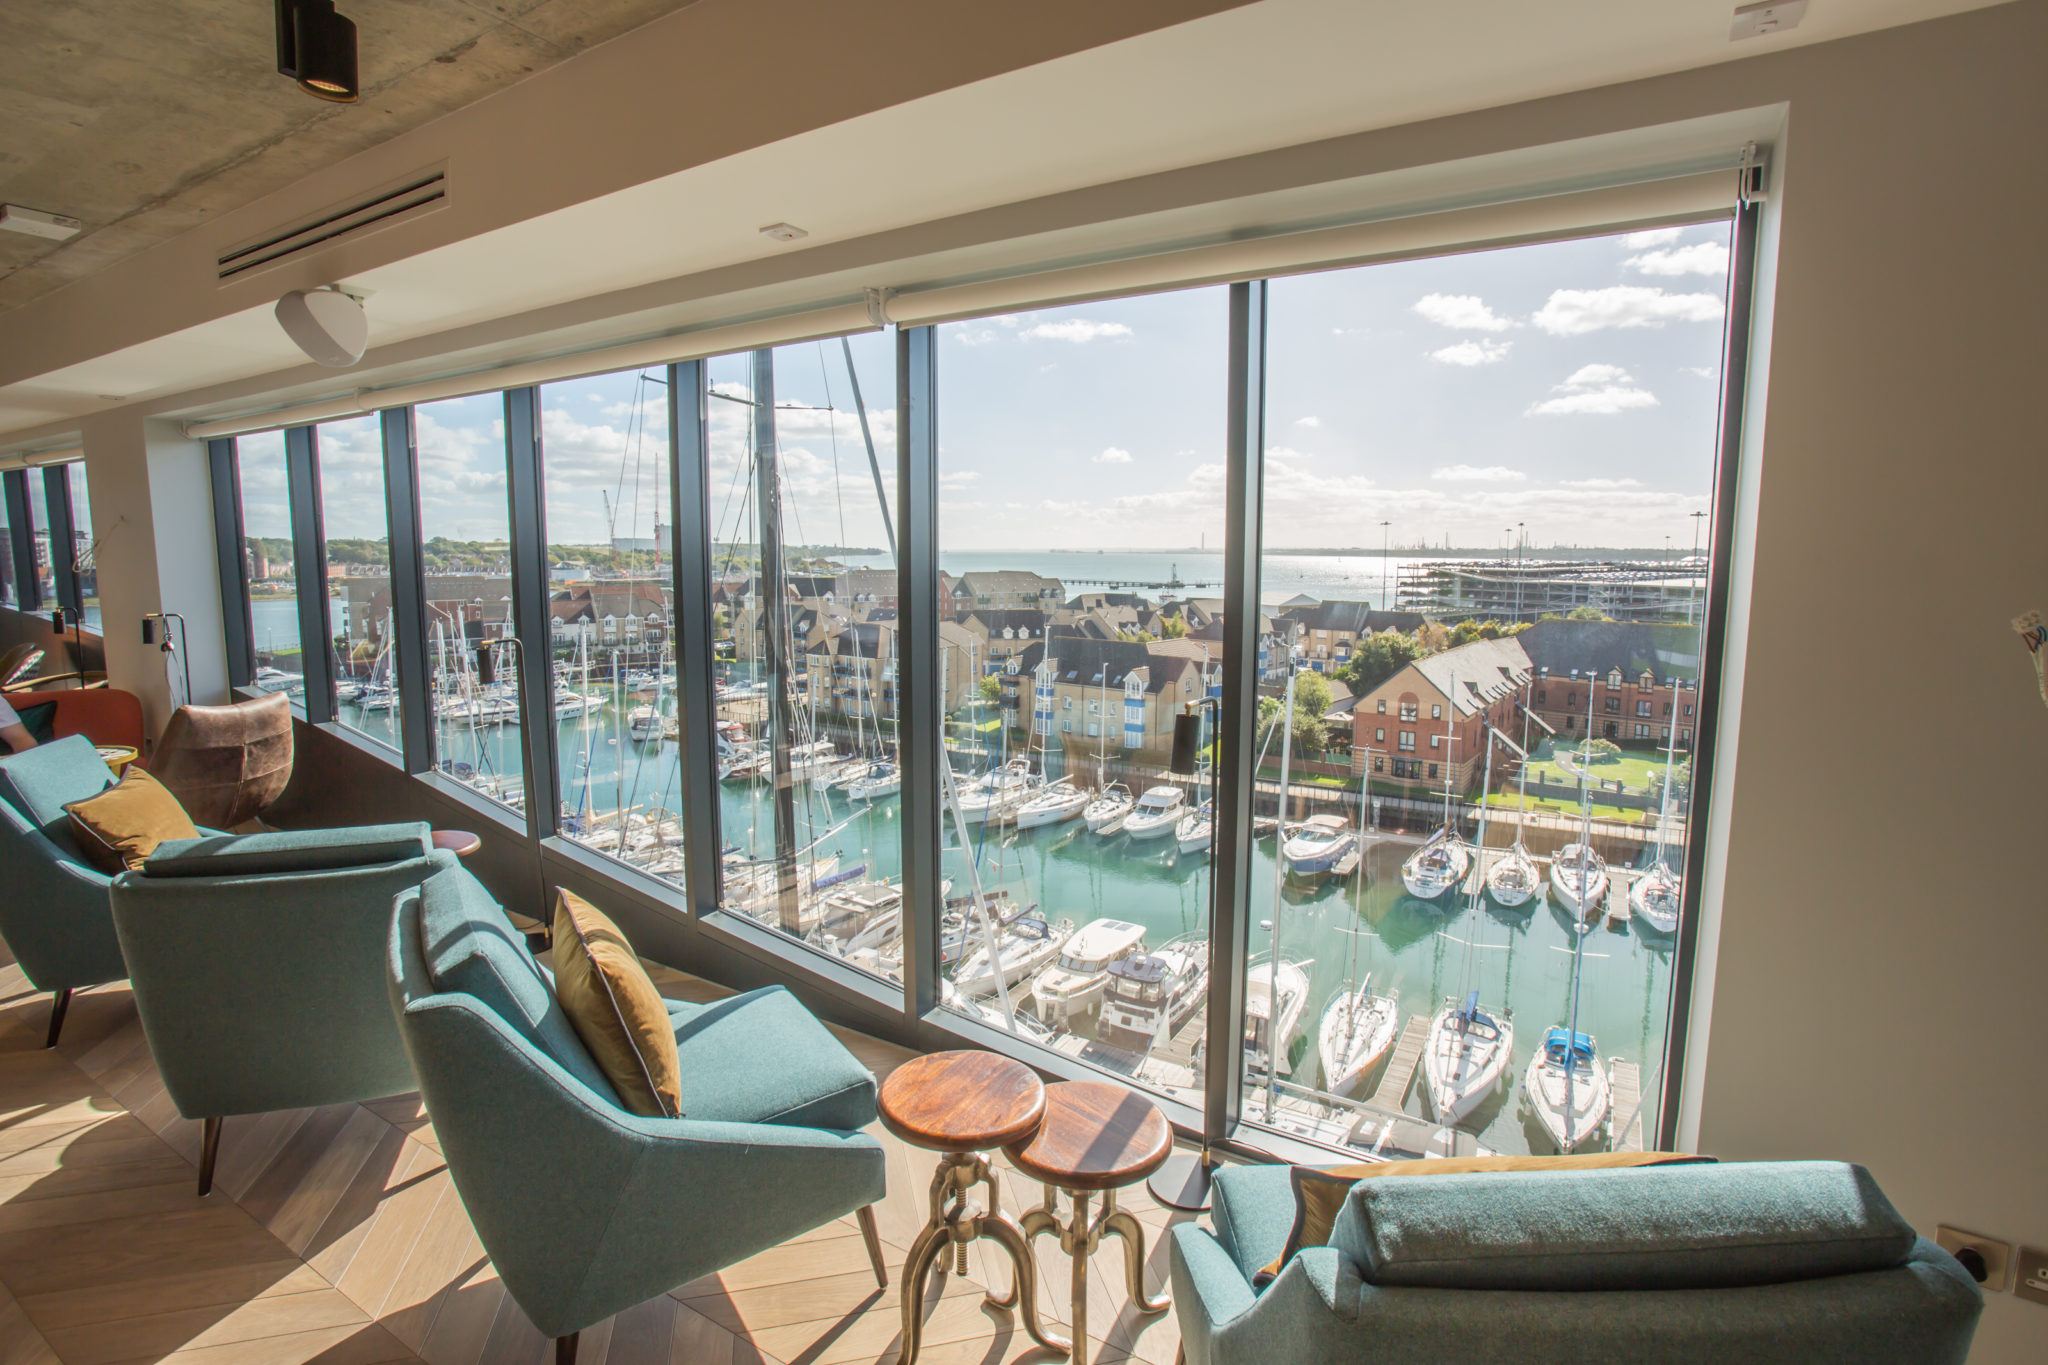 NOW OPEN: The £25m new yacht-inspired Southampton Harbour Hotel ...